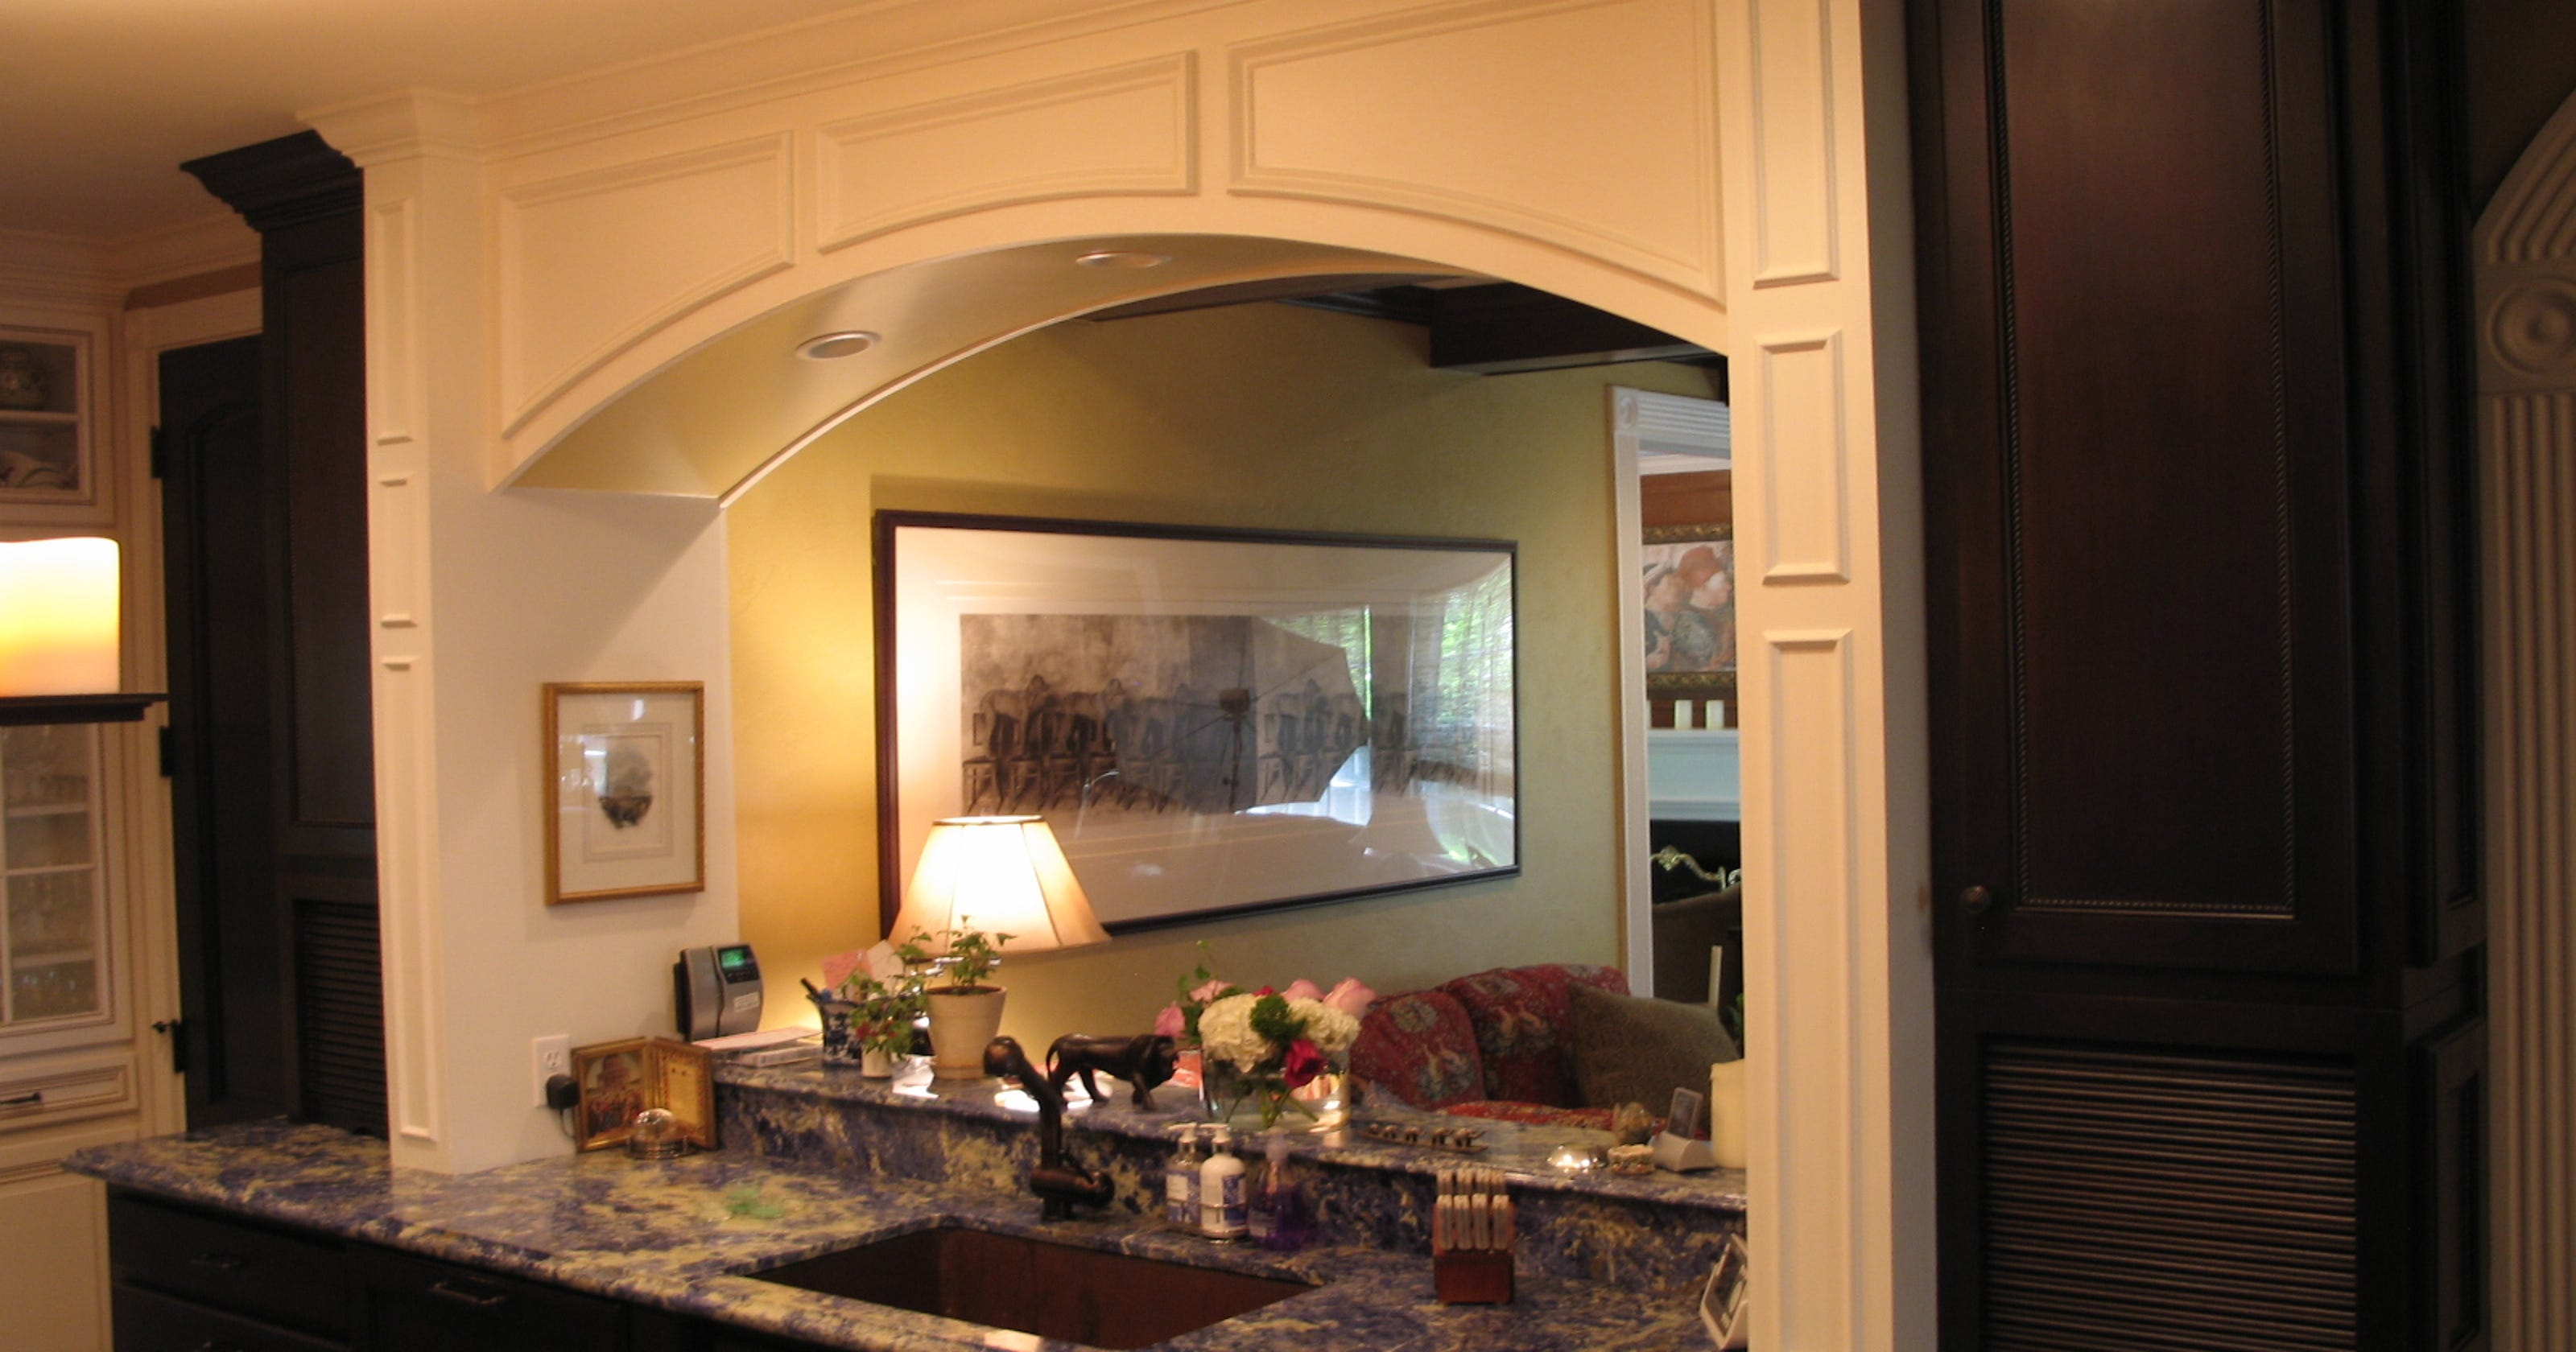 Extend your kitchen family room with a pass through